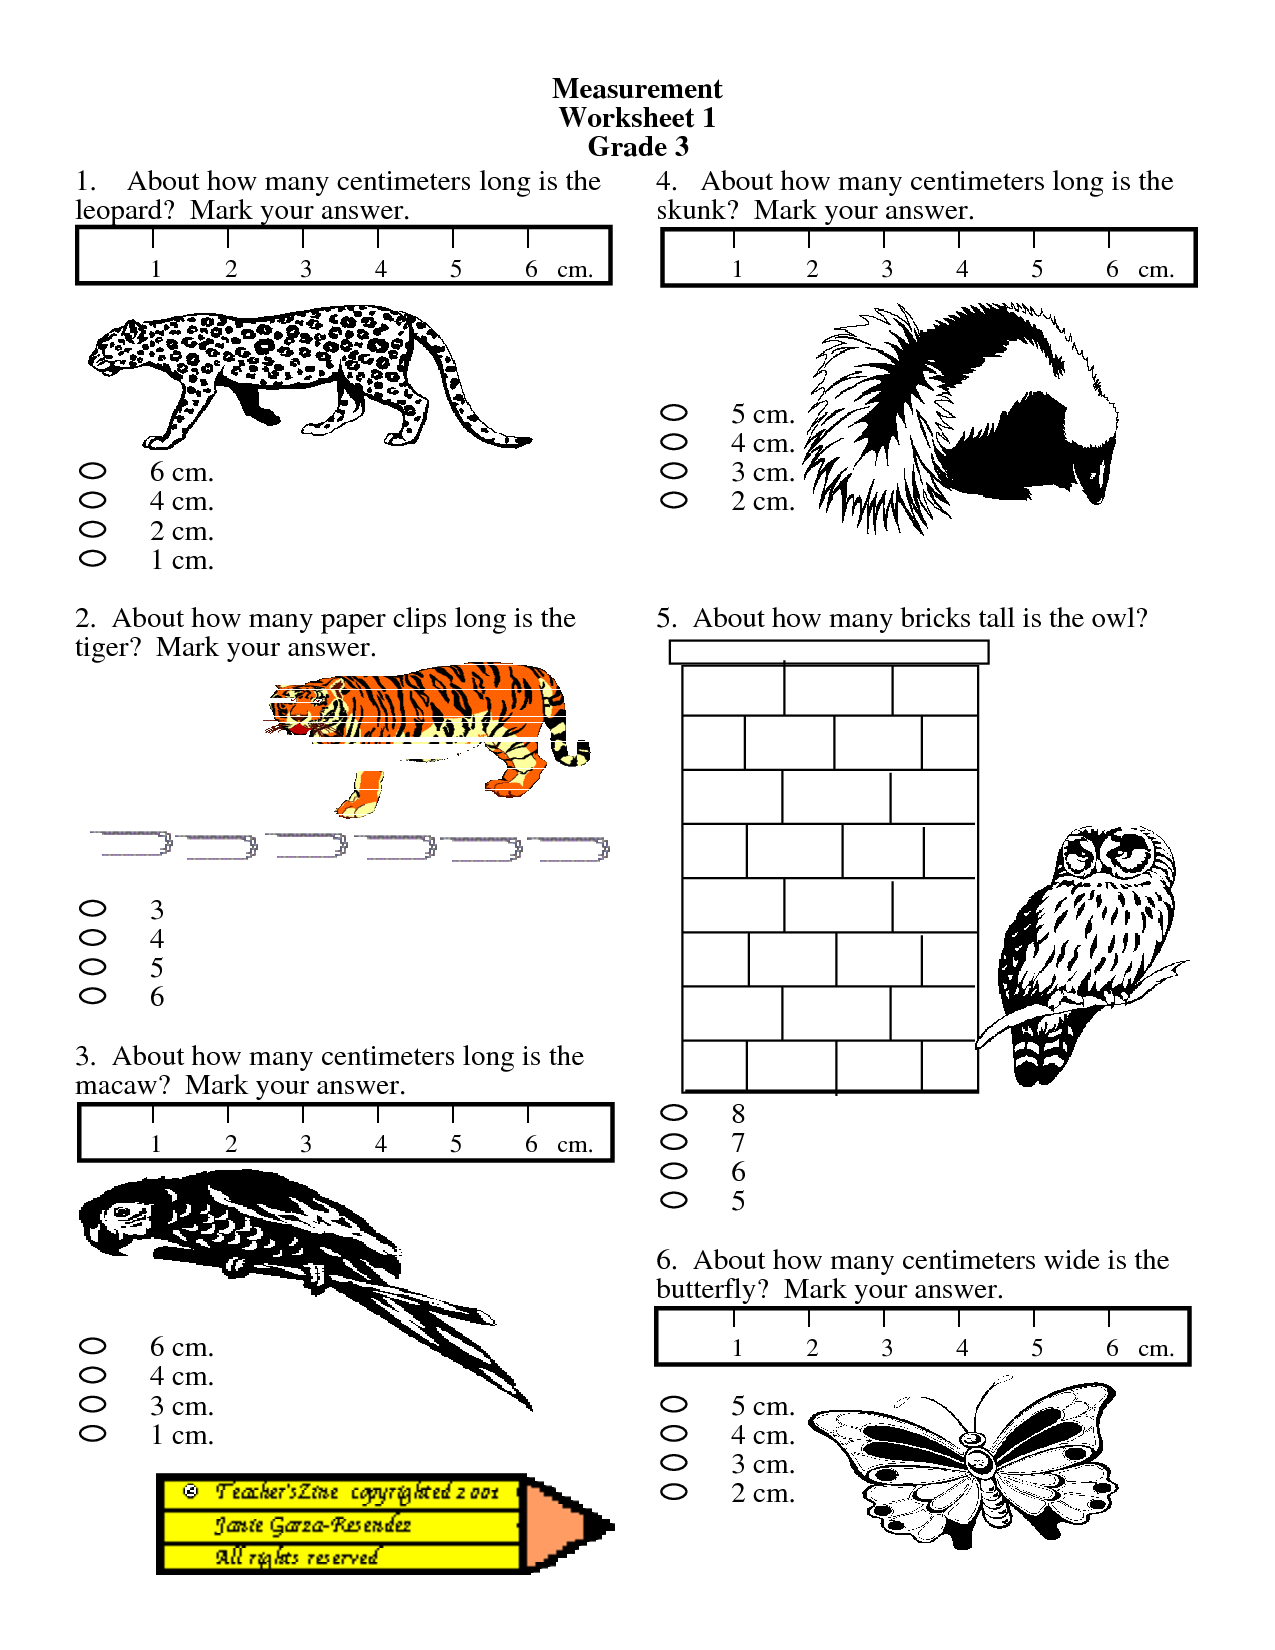 Measurement Worksheets Grade 2 Coloringkidsco – 3rd Grade Measurement Worksheets